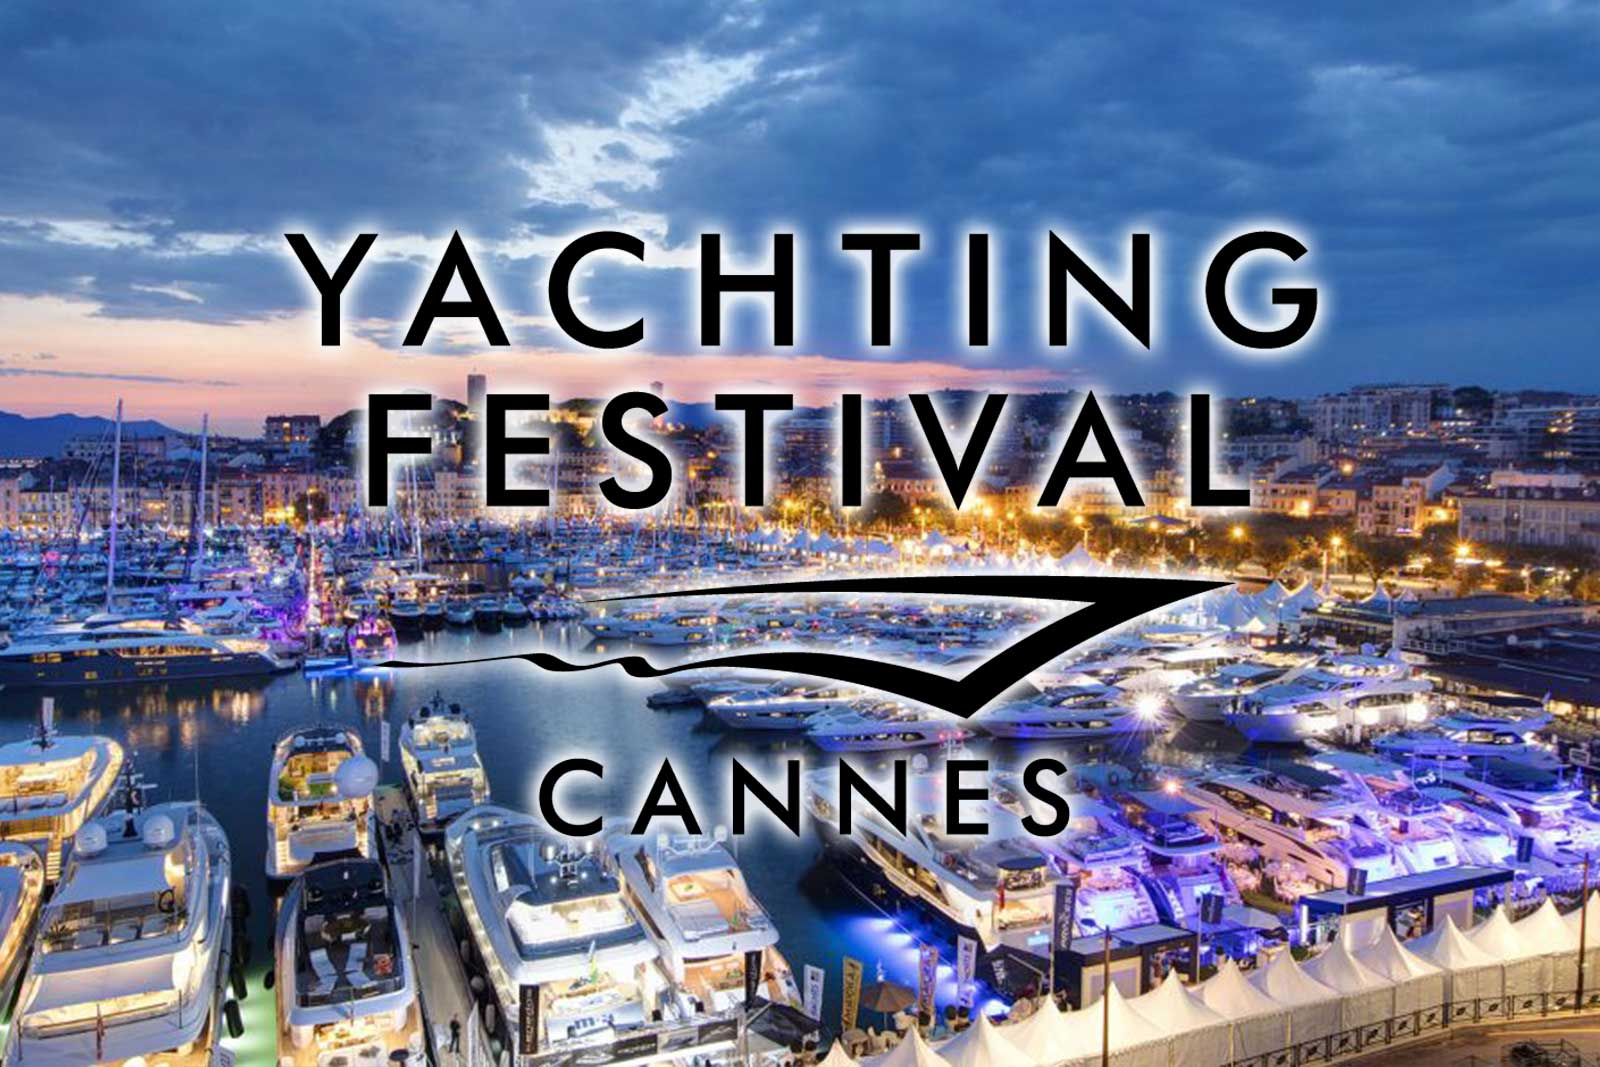 The Spectacular Showcase of Cannes Yachting Festival 2019 cannes yachting festival The Spectacular Showcase of Cannes Yachting Festival 2019 The Spectacular Showcase of Cannes Yachting Festival 2019 1